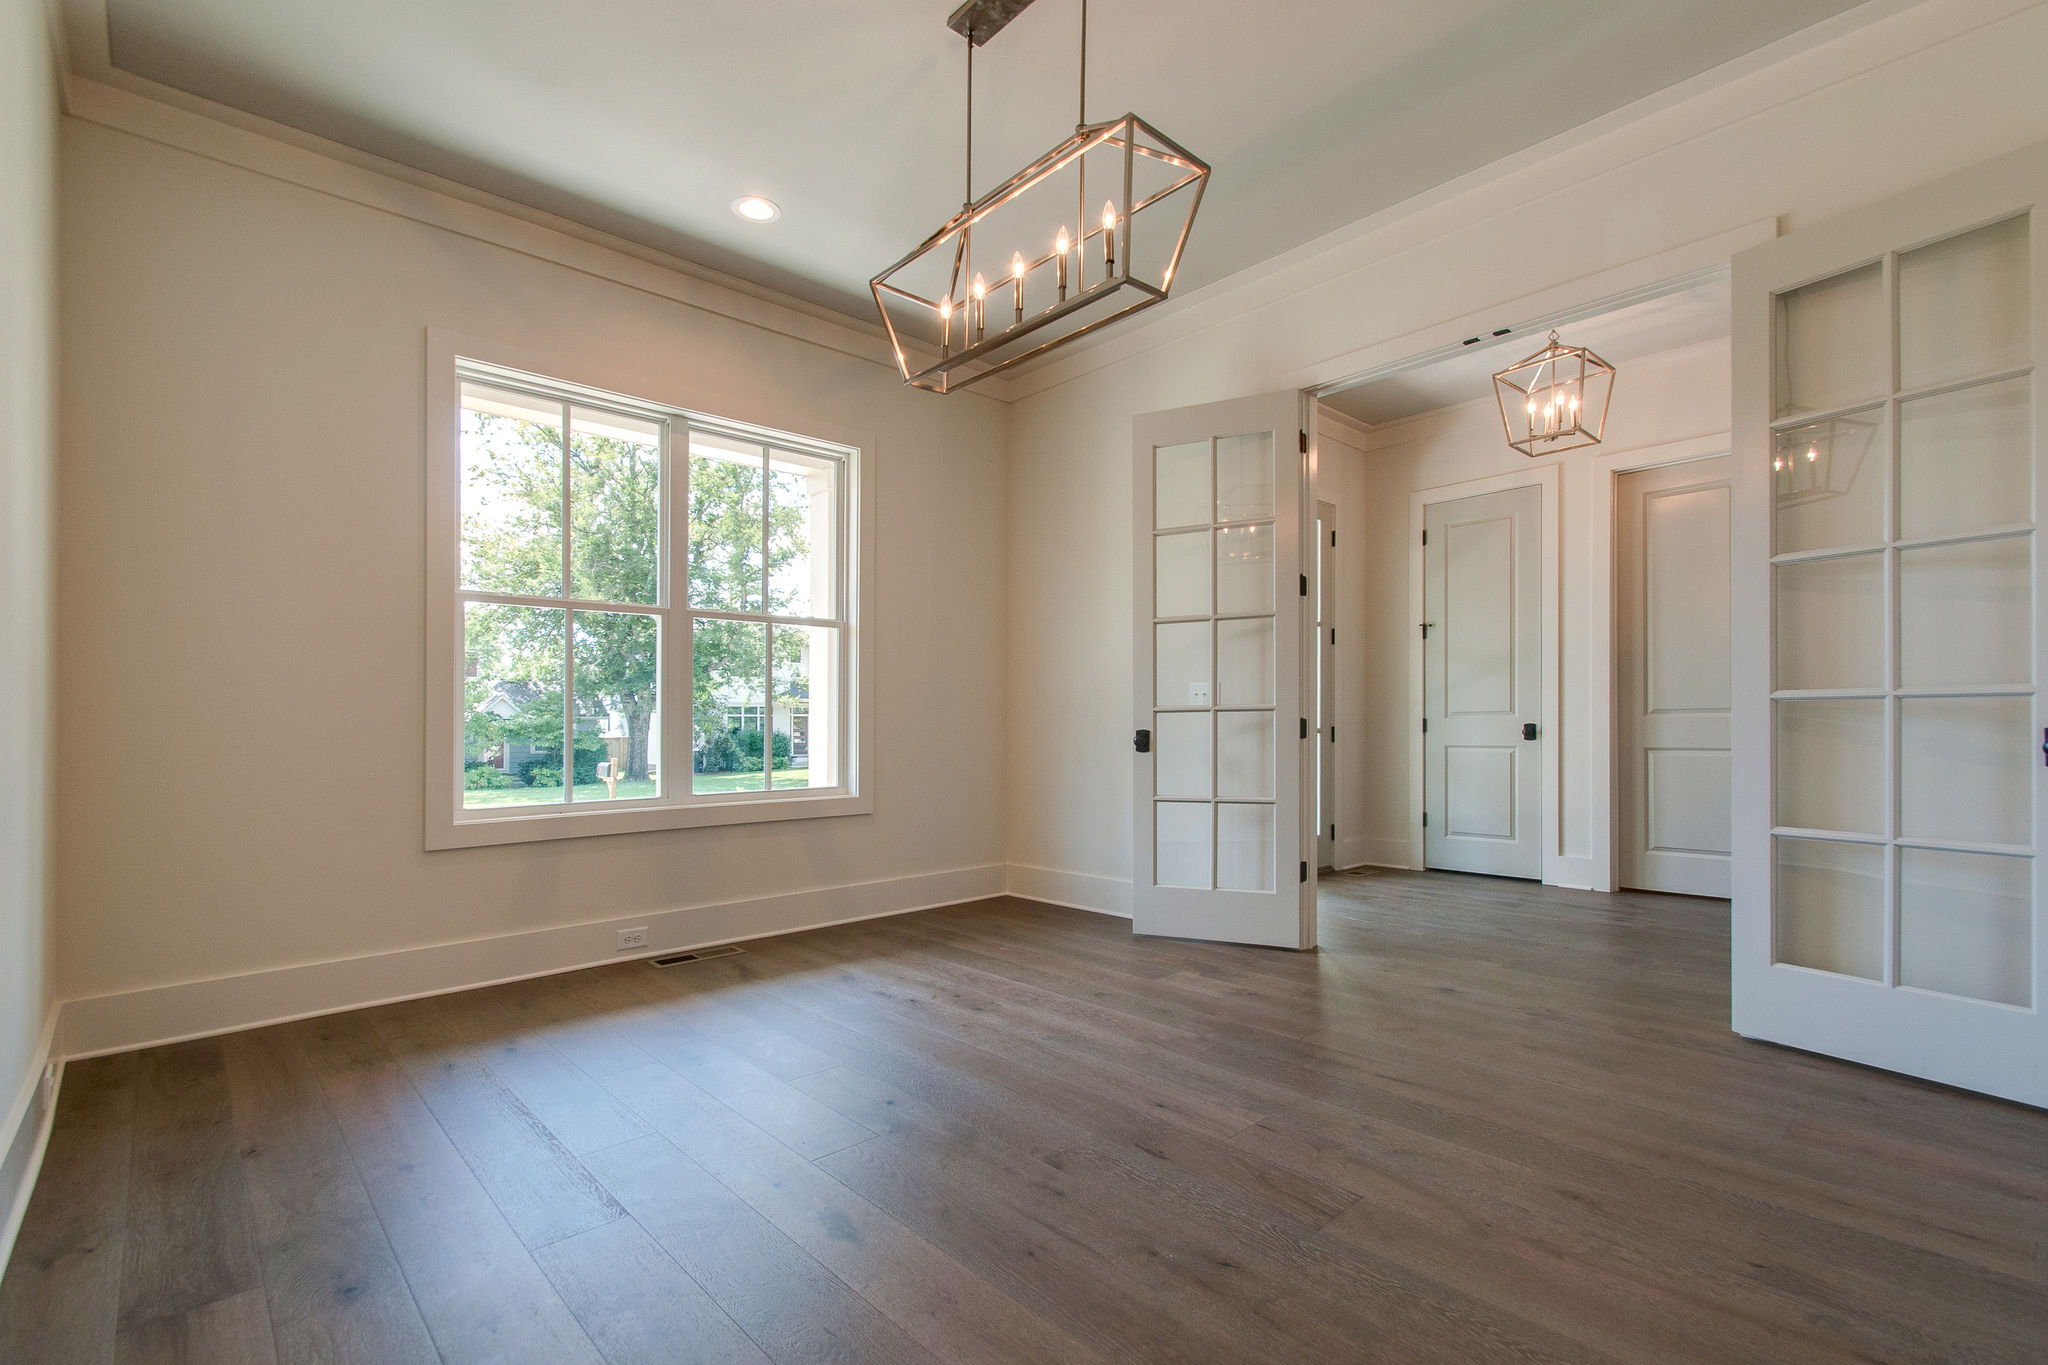 New Homes with french doors in Franklin, Brentwood, and Thompson Station TN with Custom Home Design